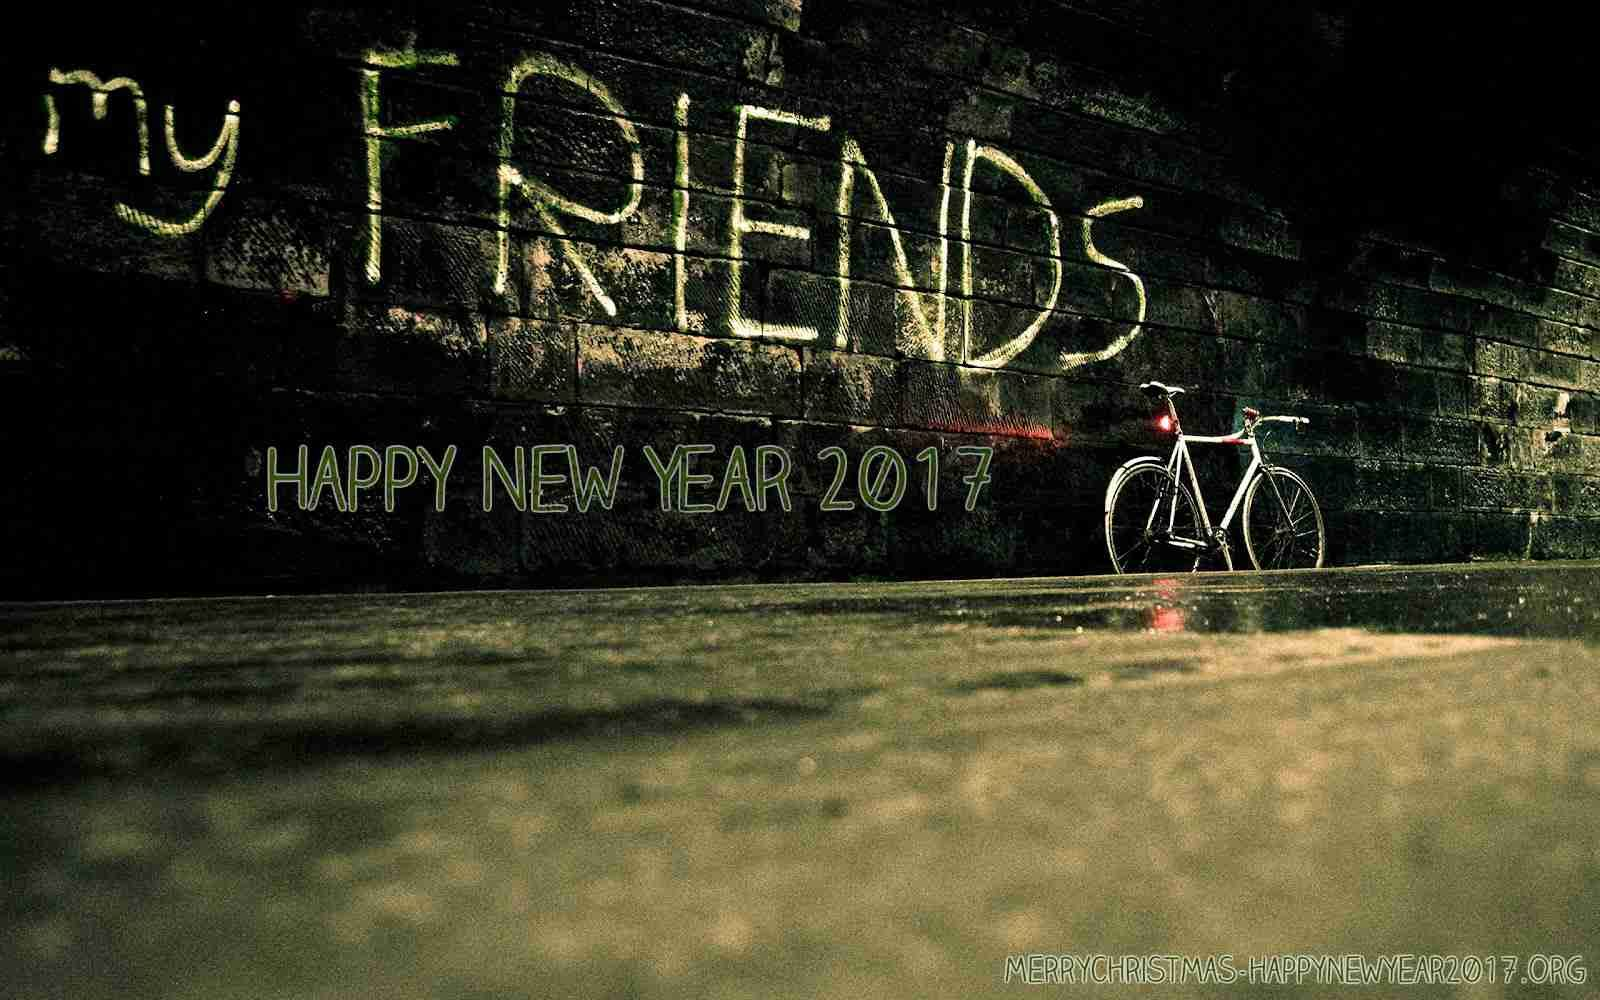 Turkish Quotes About Friendship Happynewyear2017Imagesforfreinds  Christmas & New Year 2017